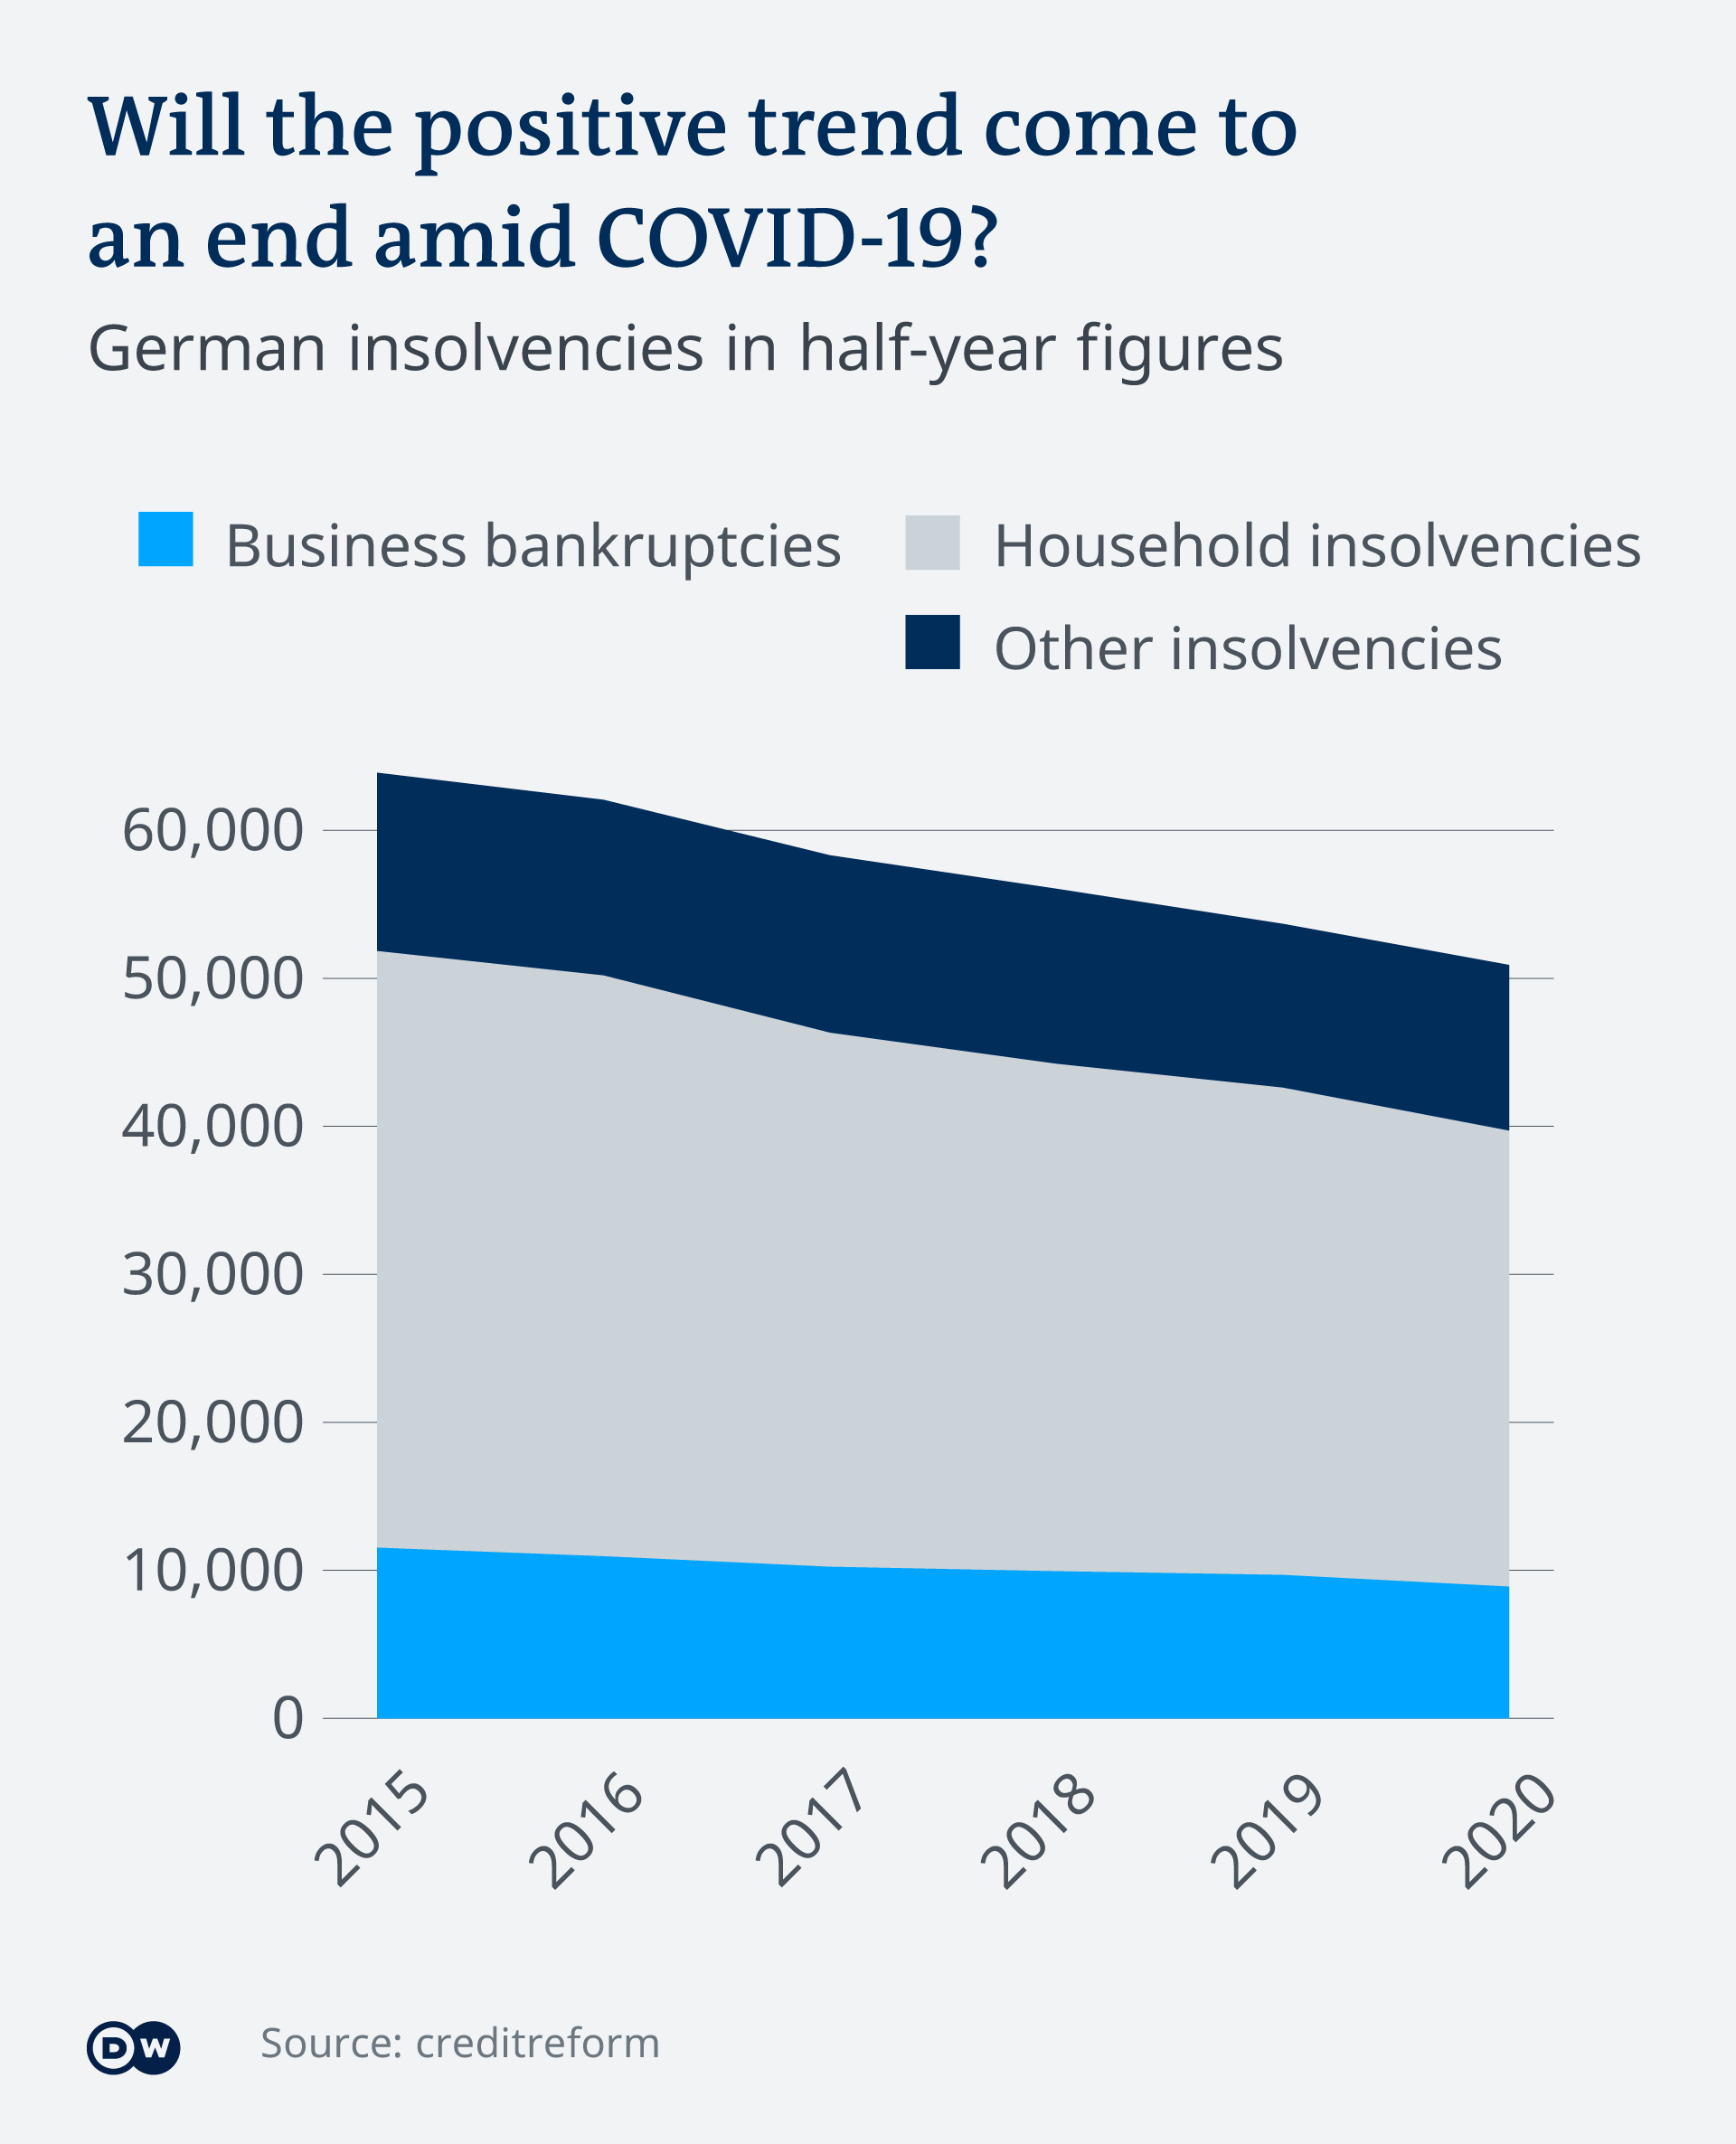 A graphic depicting the development of business, household and other insolvencies in Germany, and showing a steady downward trend between the years 2015 and 2020